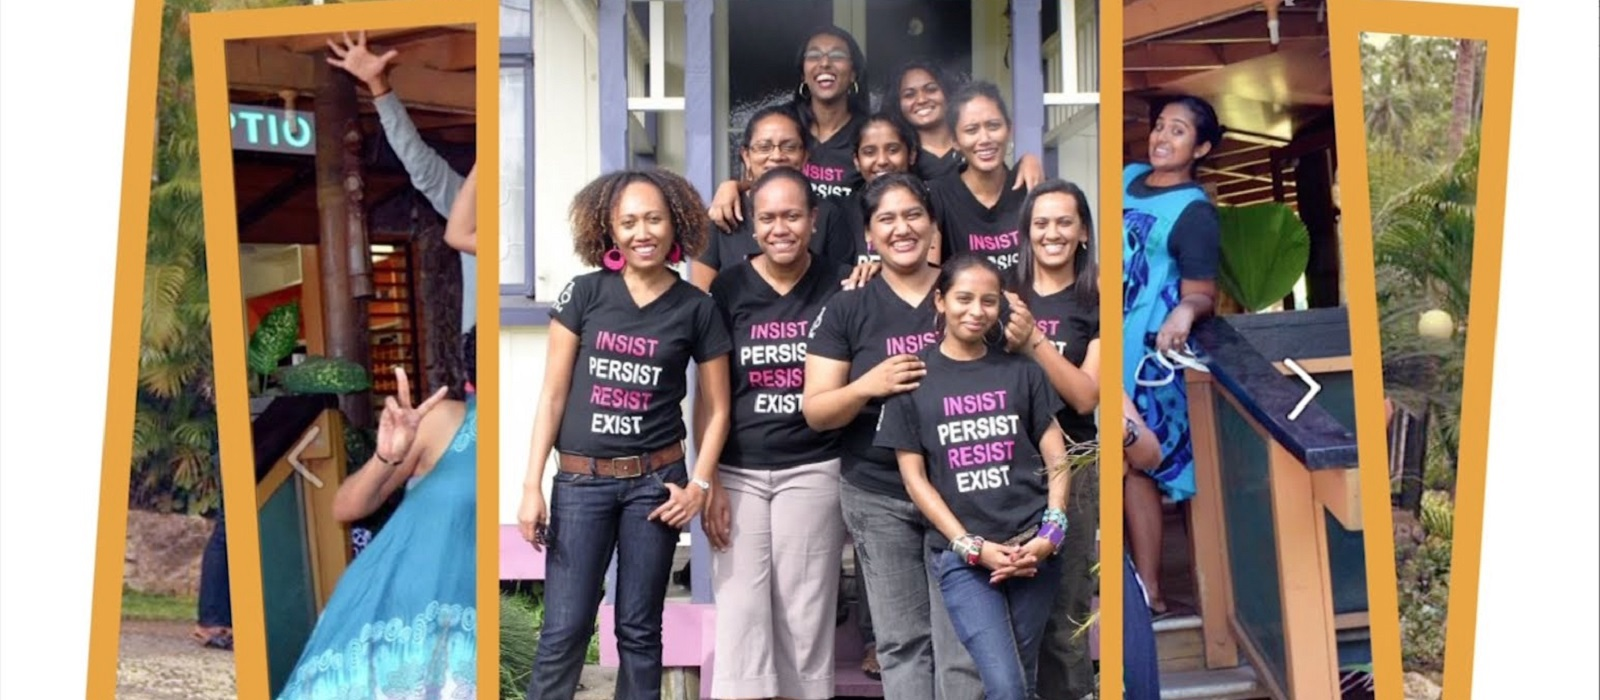 #OurTimeNow: The Fiji Women's Rights Movement